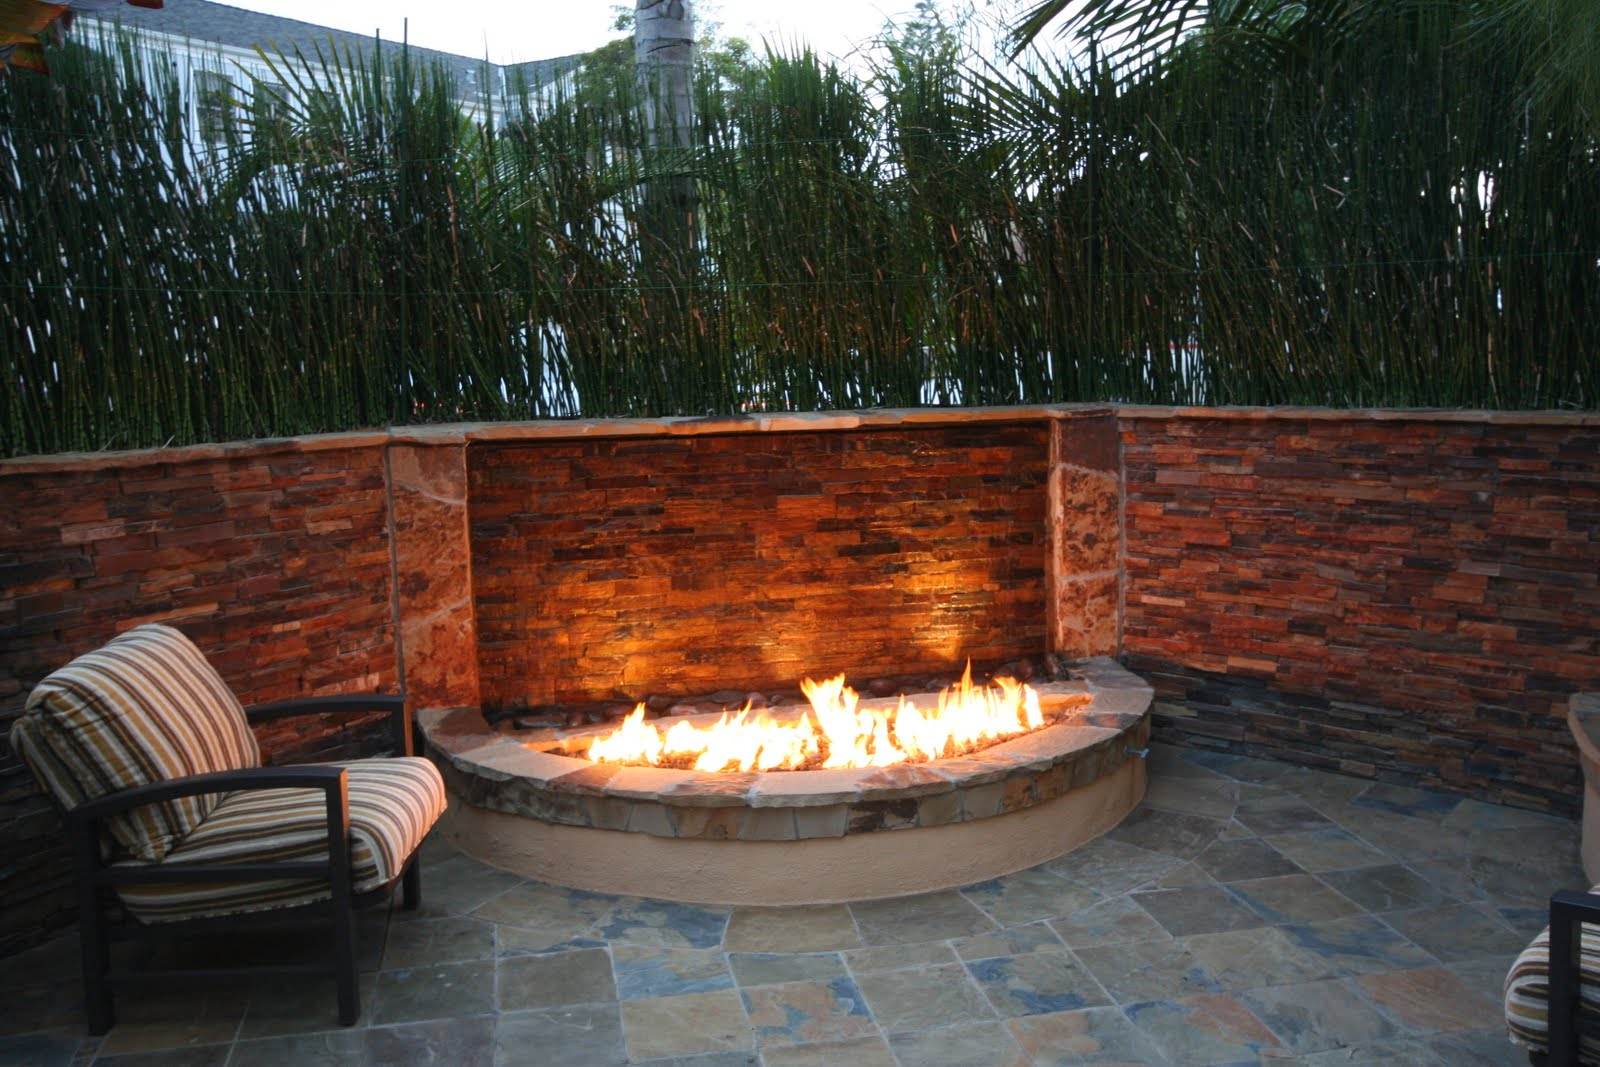 Outdoor fireplaces and firepits ~ 01145225_Feuerstelle Garten Zum Kochen